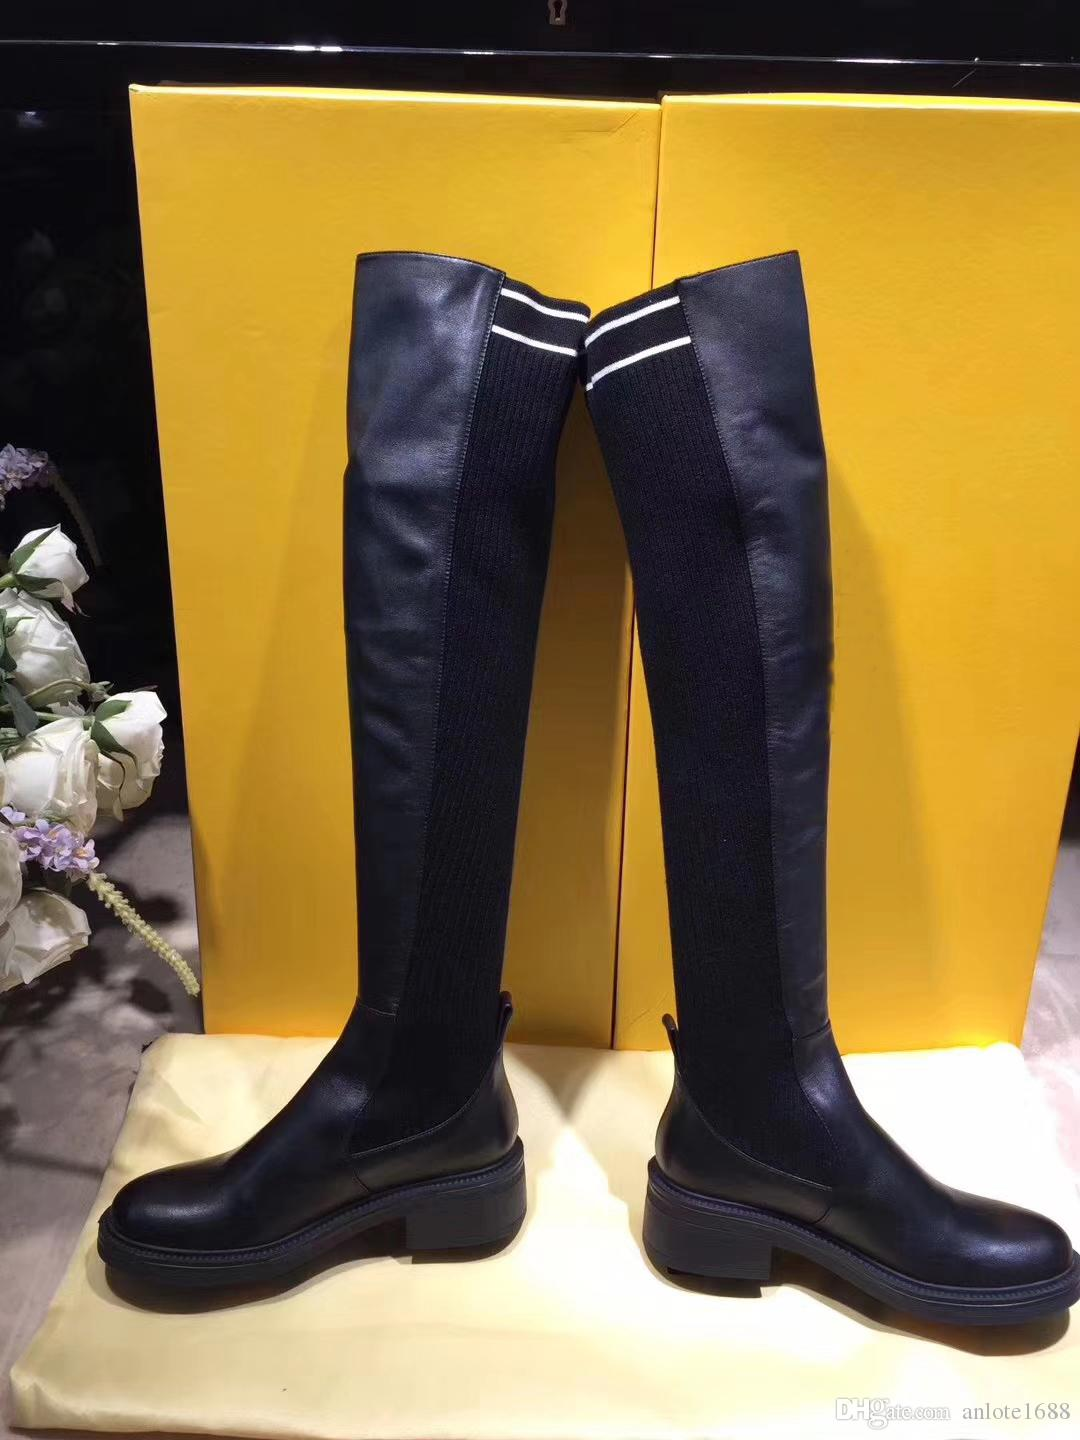 5edebd9759c Black Nappa Cuissard Long Boots Women Stretch Fabric Thigh High Boots  Designer Stripe Leather Creepers Girl Casual Dress Shoes Shoe Boots Over  Knee ...